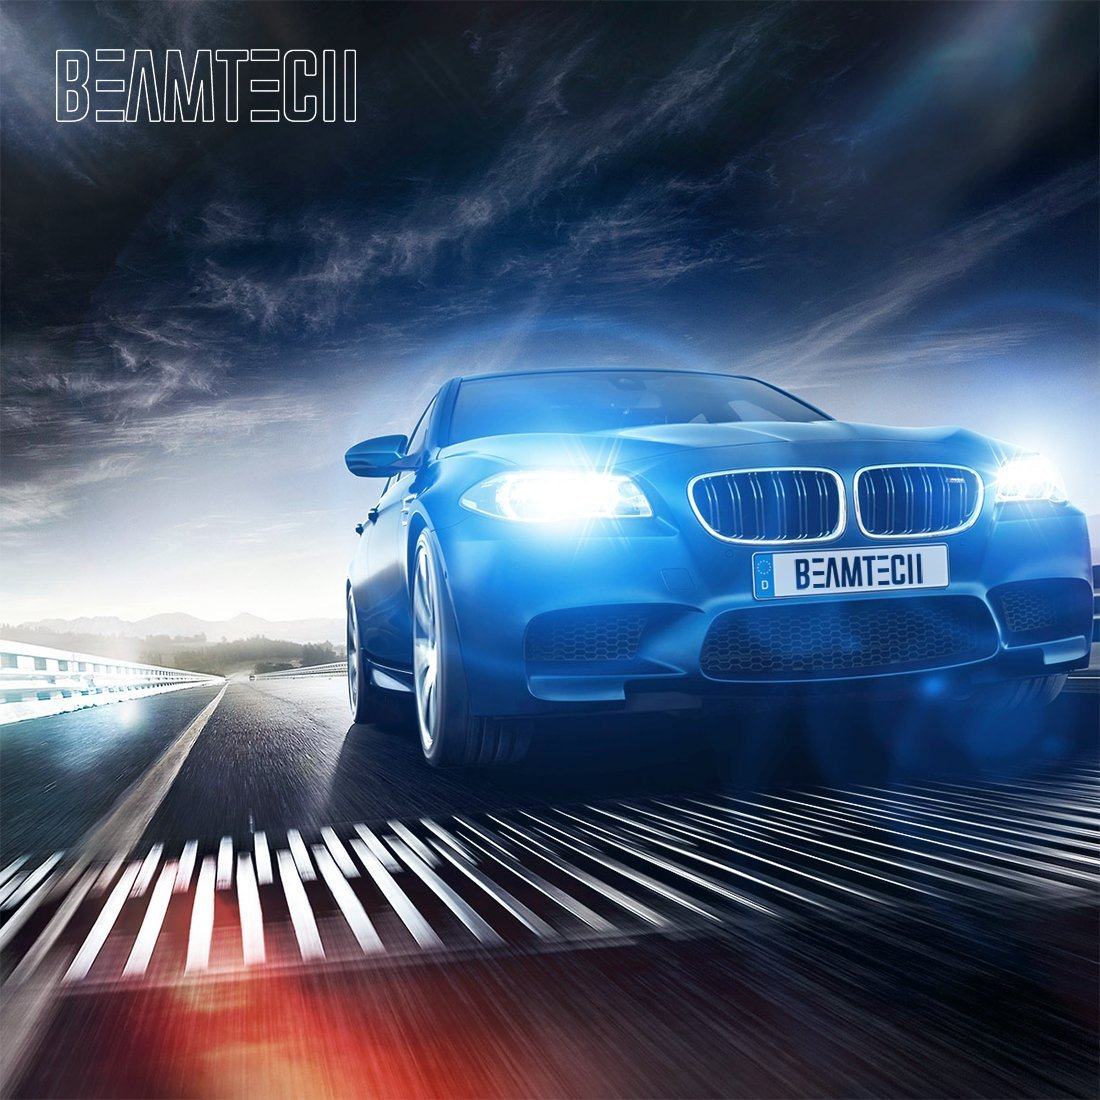 BEAMTECH 9007 LED Headlight Bulb,CSP Chips 50W 8000 Lumens 6500K Xenon White Extremely Bright Conversion Kit of 2 by BEAMTECH (Image #8)